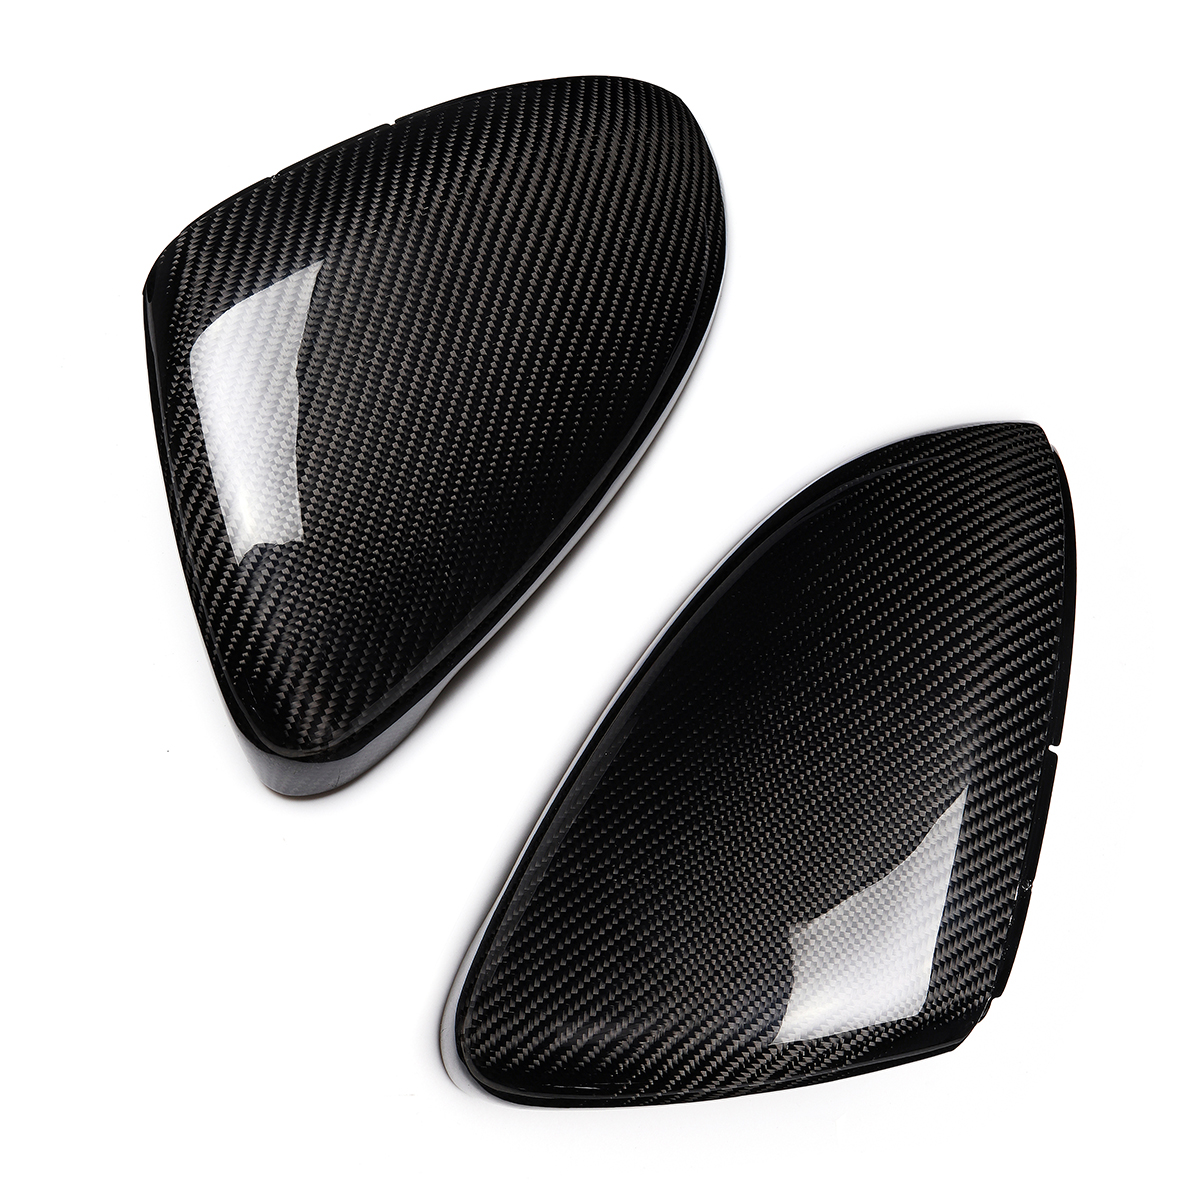 Real Carbon Fiber Rearview Door Side View Mirror Car Wing Mirror Replacement Cover Caps for VW Golf GTI MK7 2013 17 for renault captur 2013 2014 2015 abs carbon fiber vein side door mirror wing mirror cover cap sticker car styling accessories